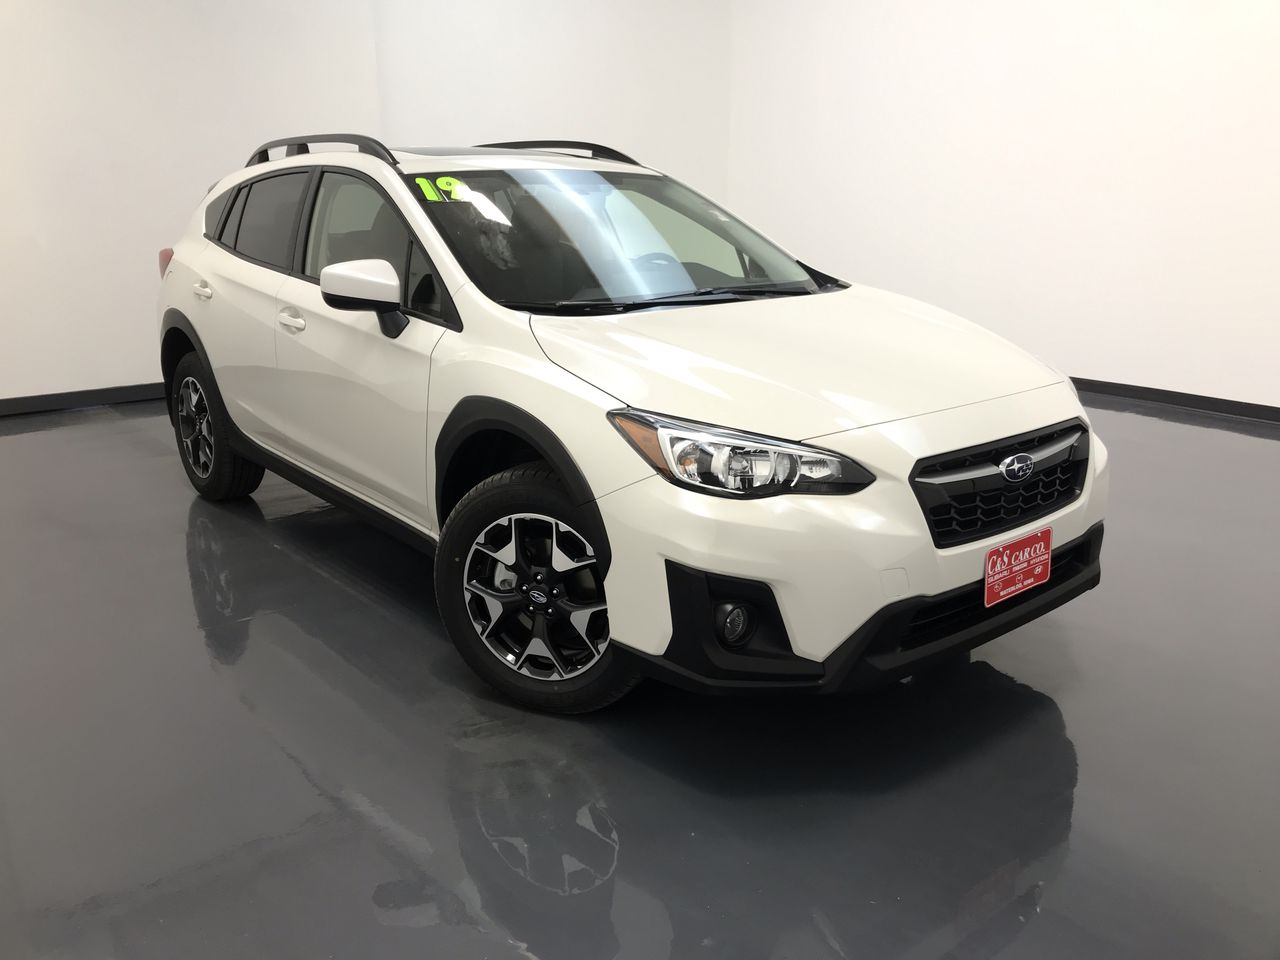 2019 Subaru Crosstrek 2.0i Premium w/Eyesight  - SB7895  - C & S Car Company